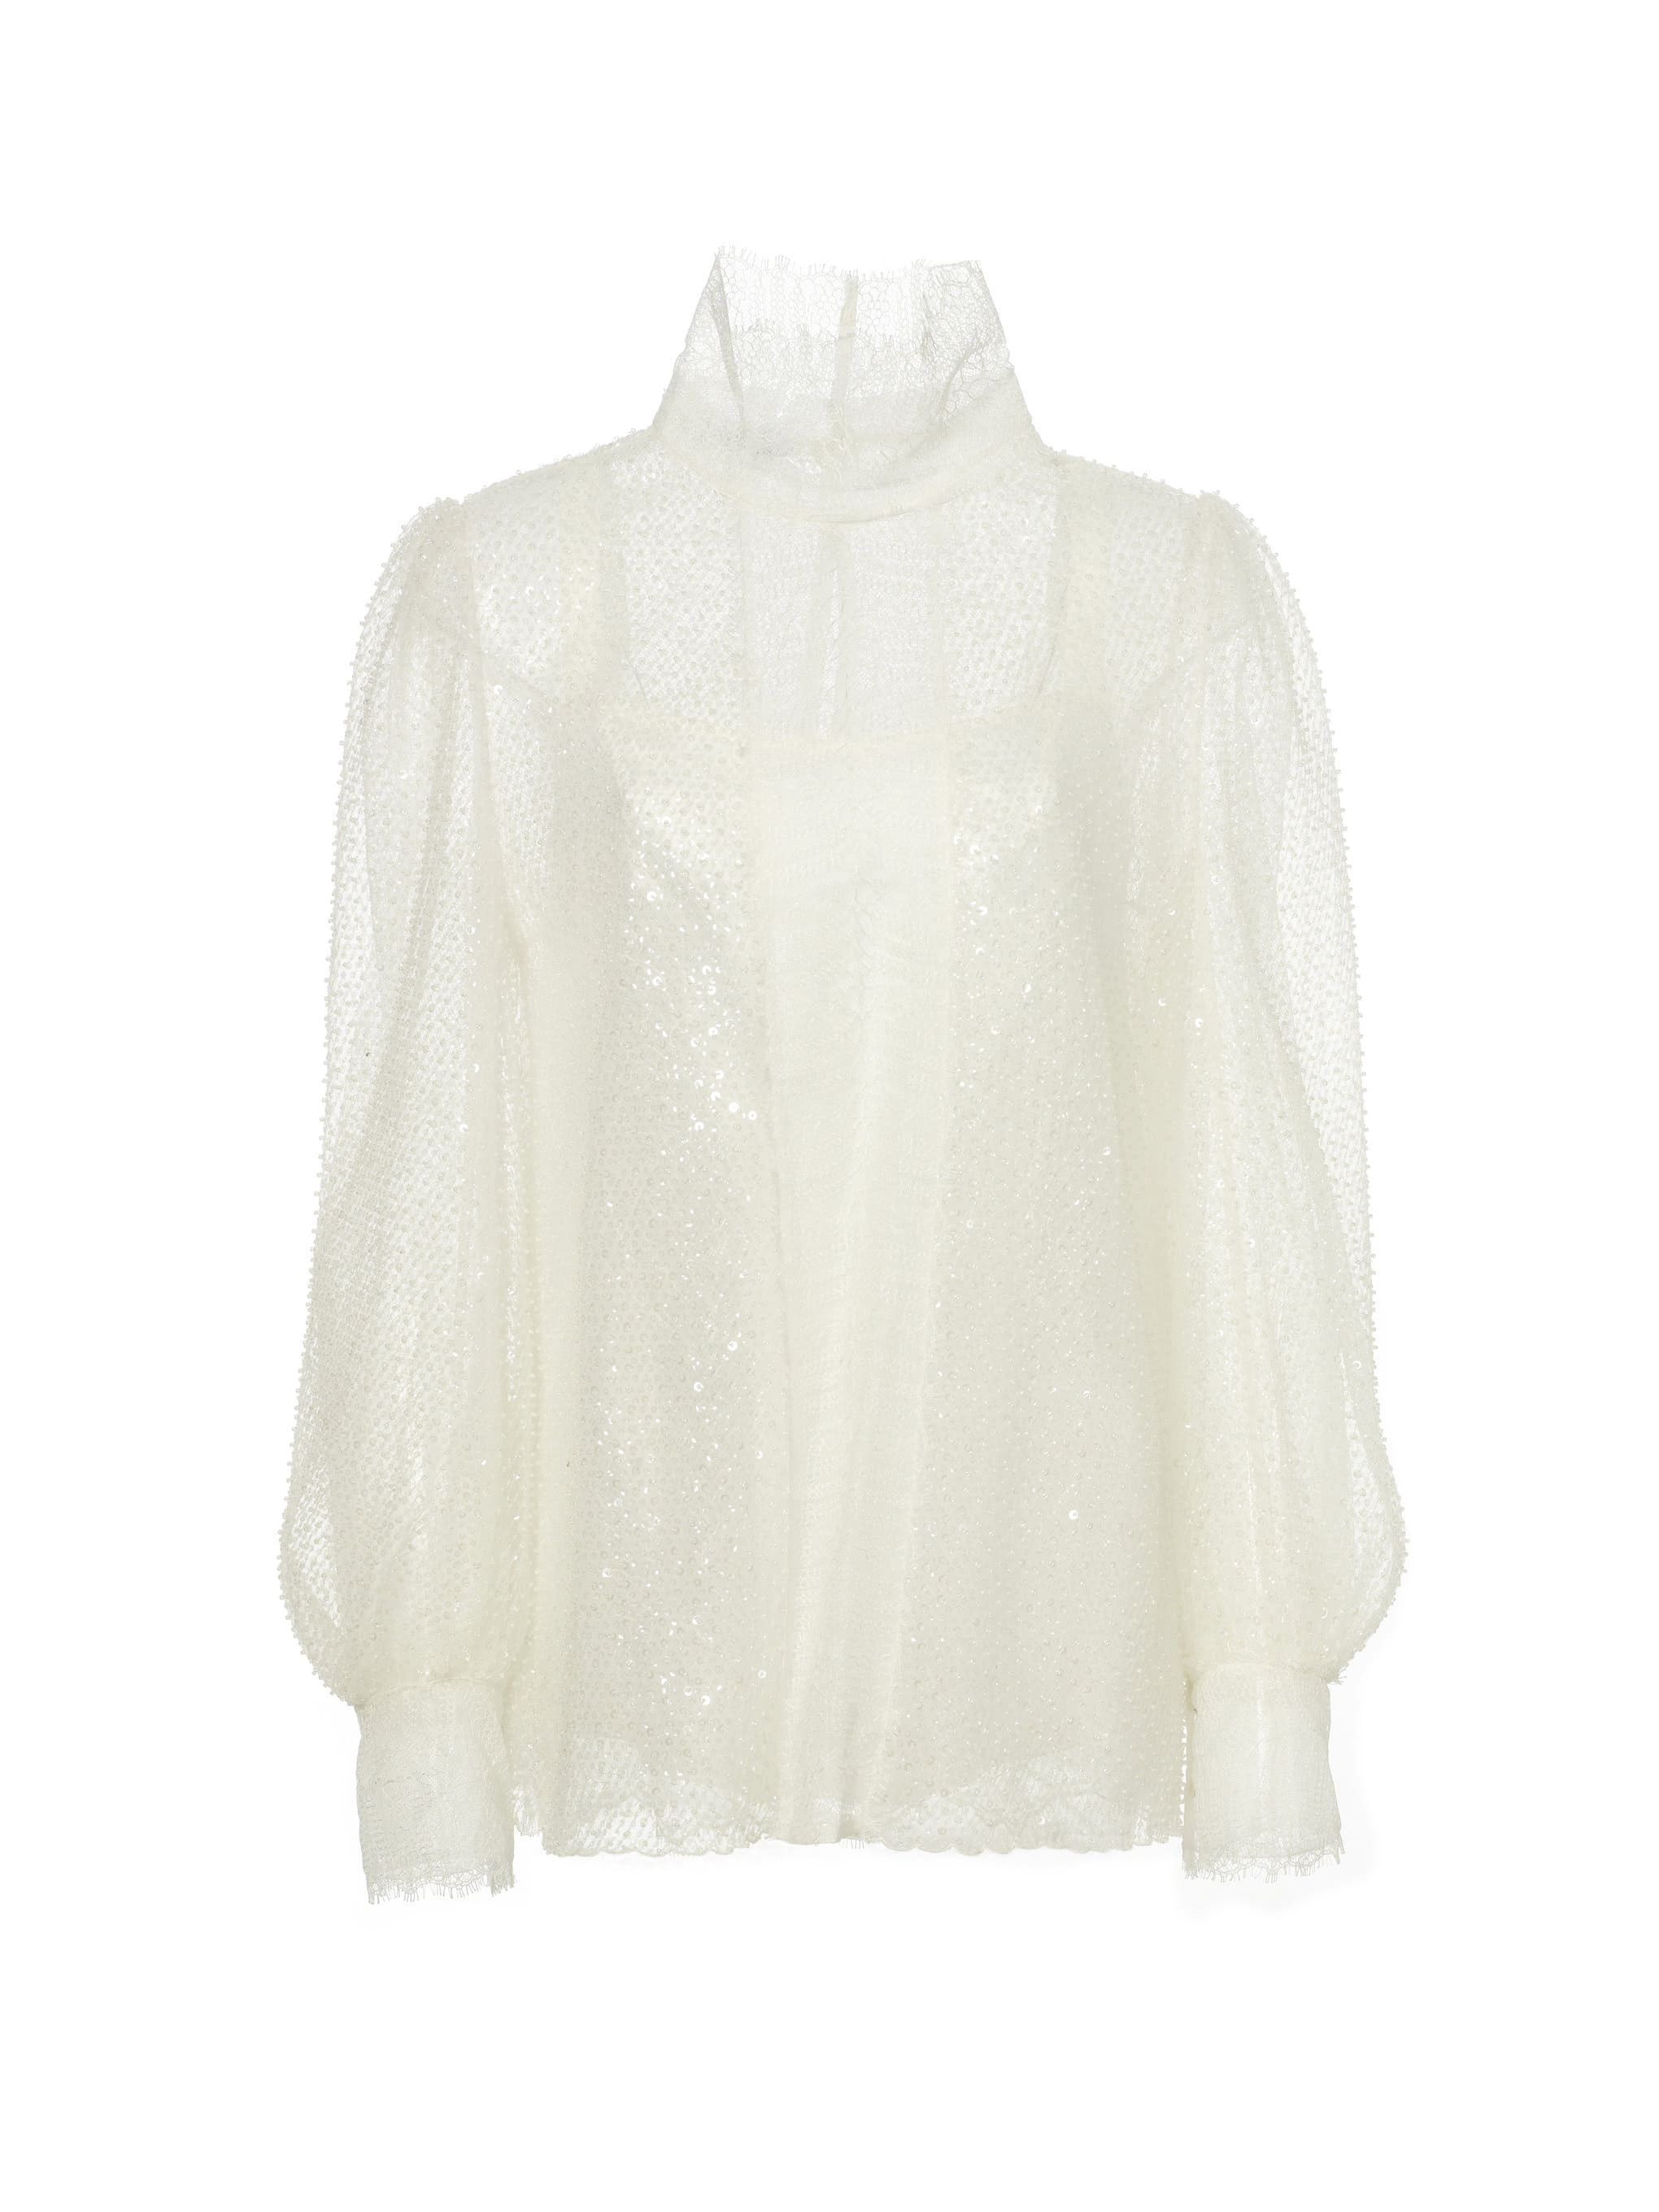 Shiatzy Chen See-through Sequined Lace Top